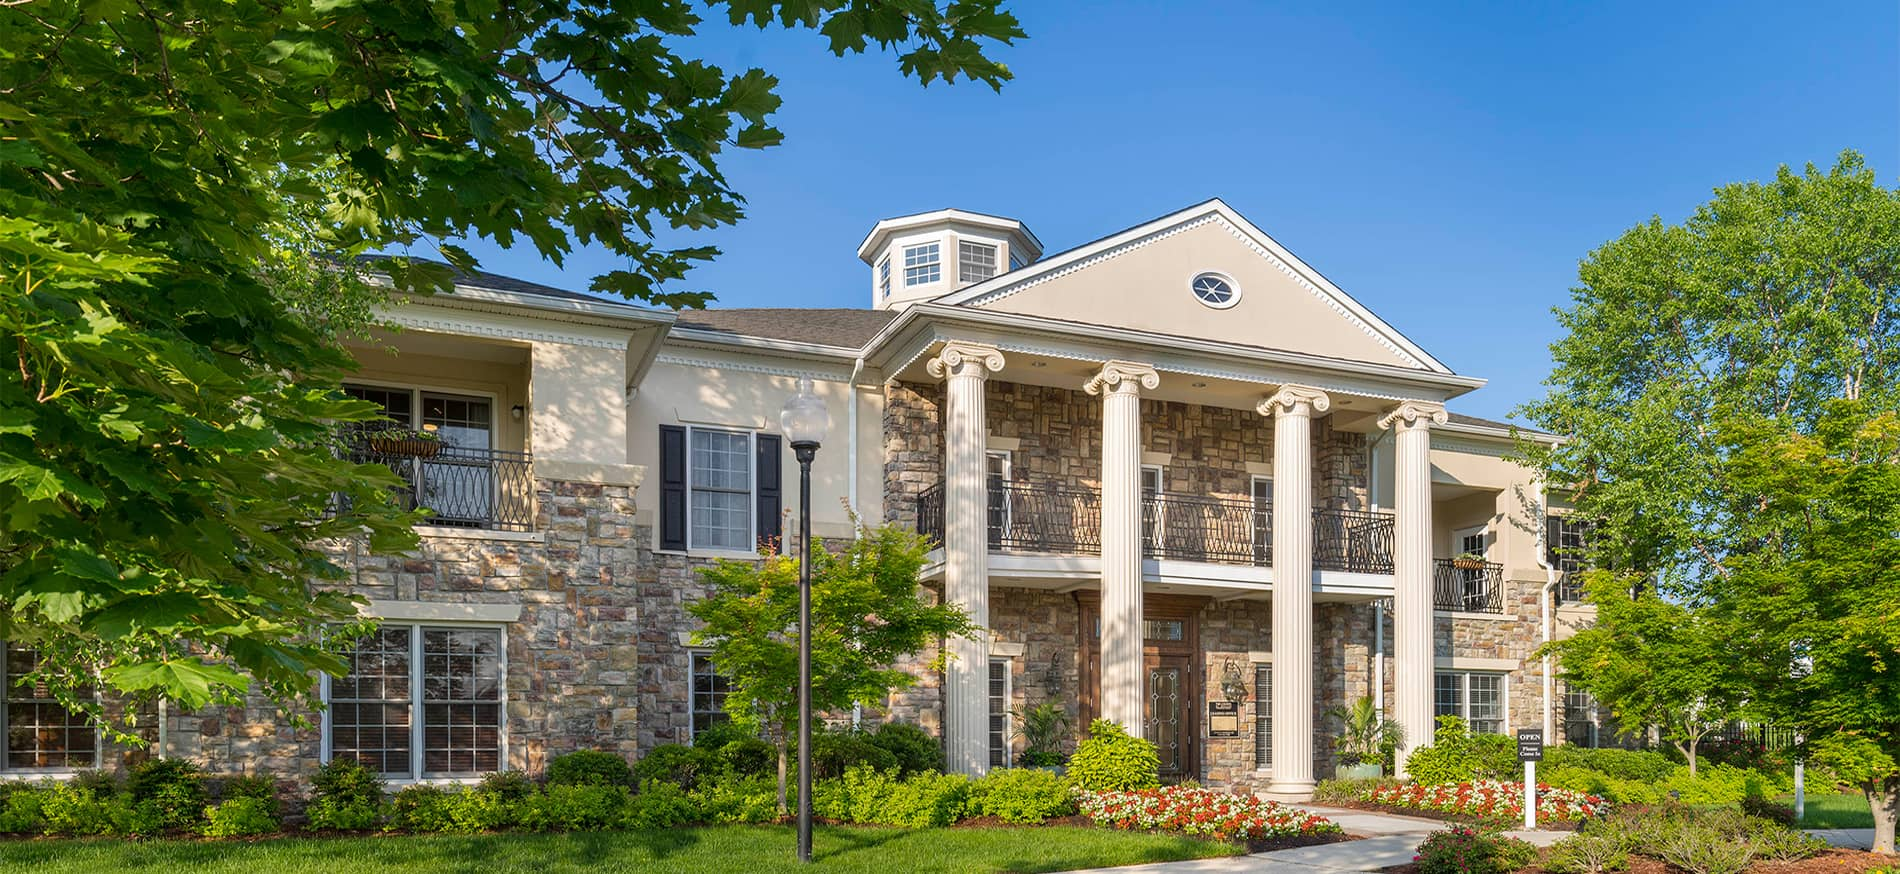 The courts at dulles apartments in herndon va - One bedroom apartments in herndon va ...